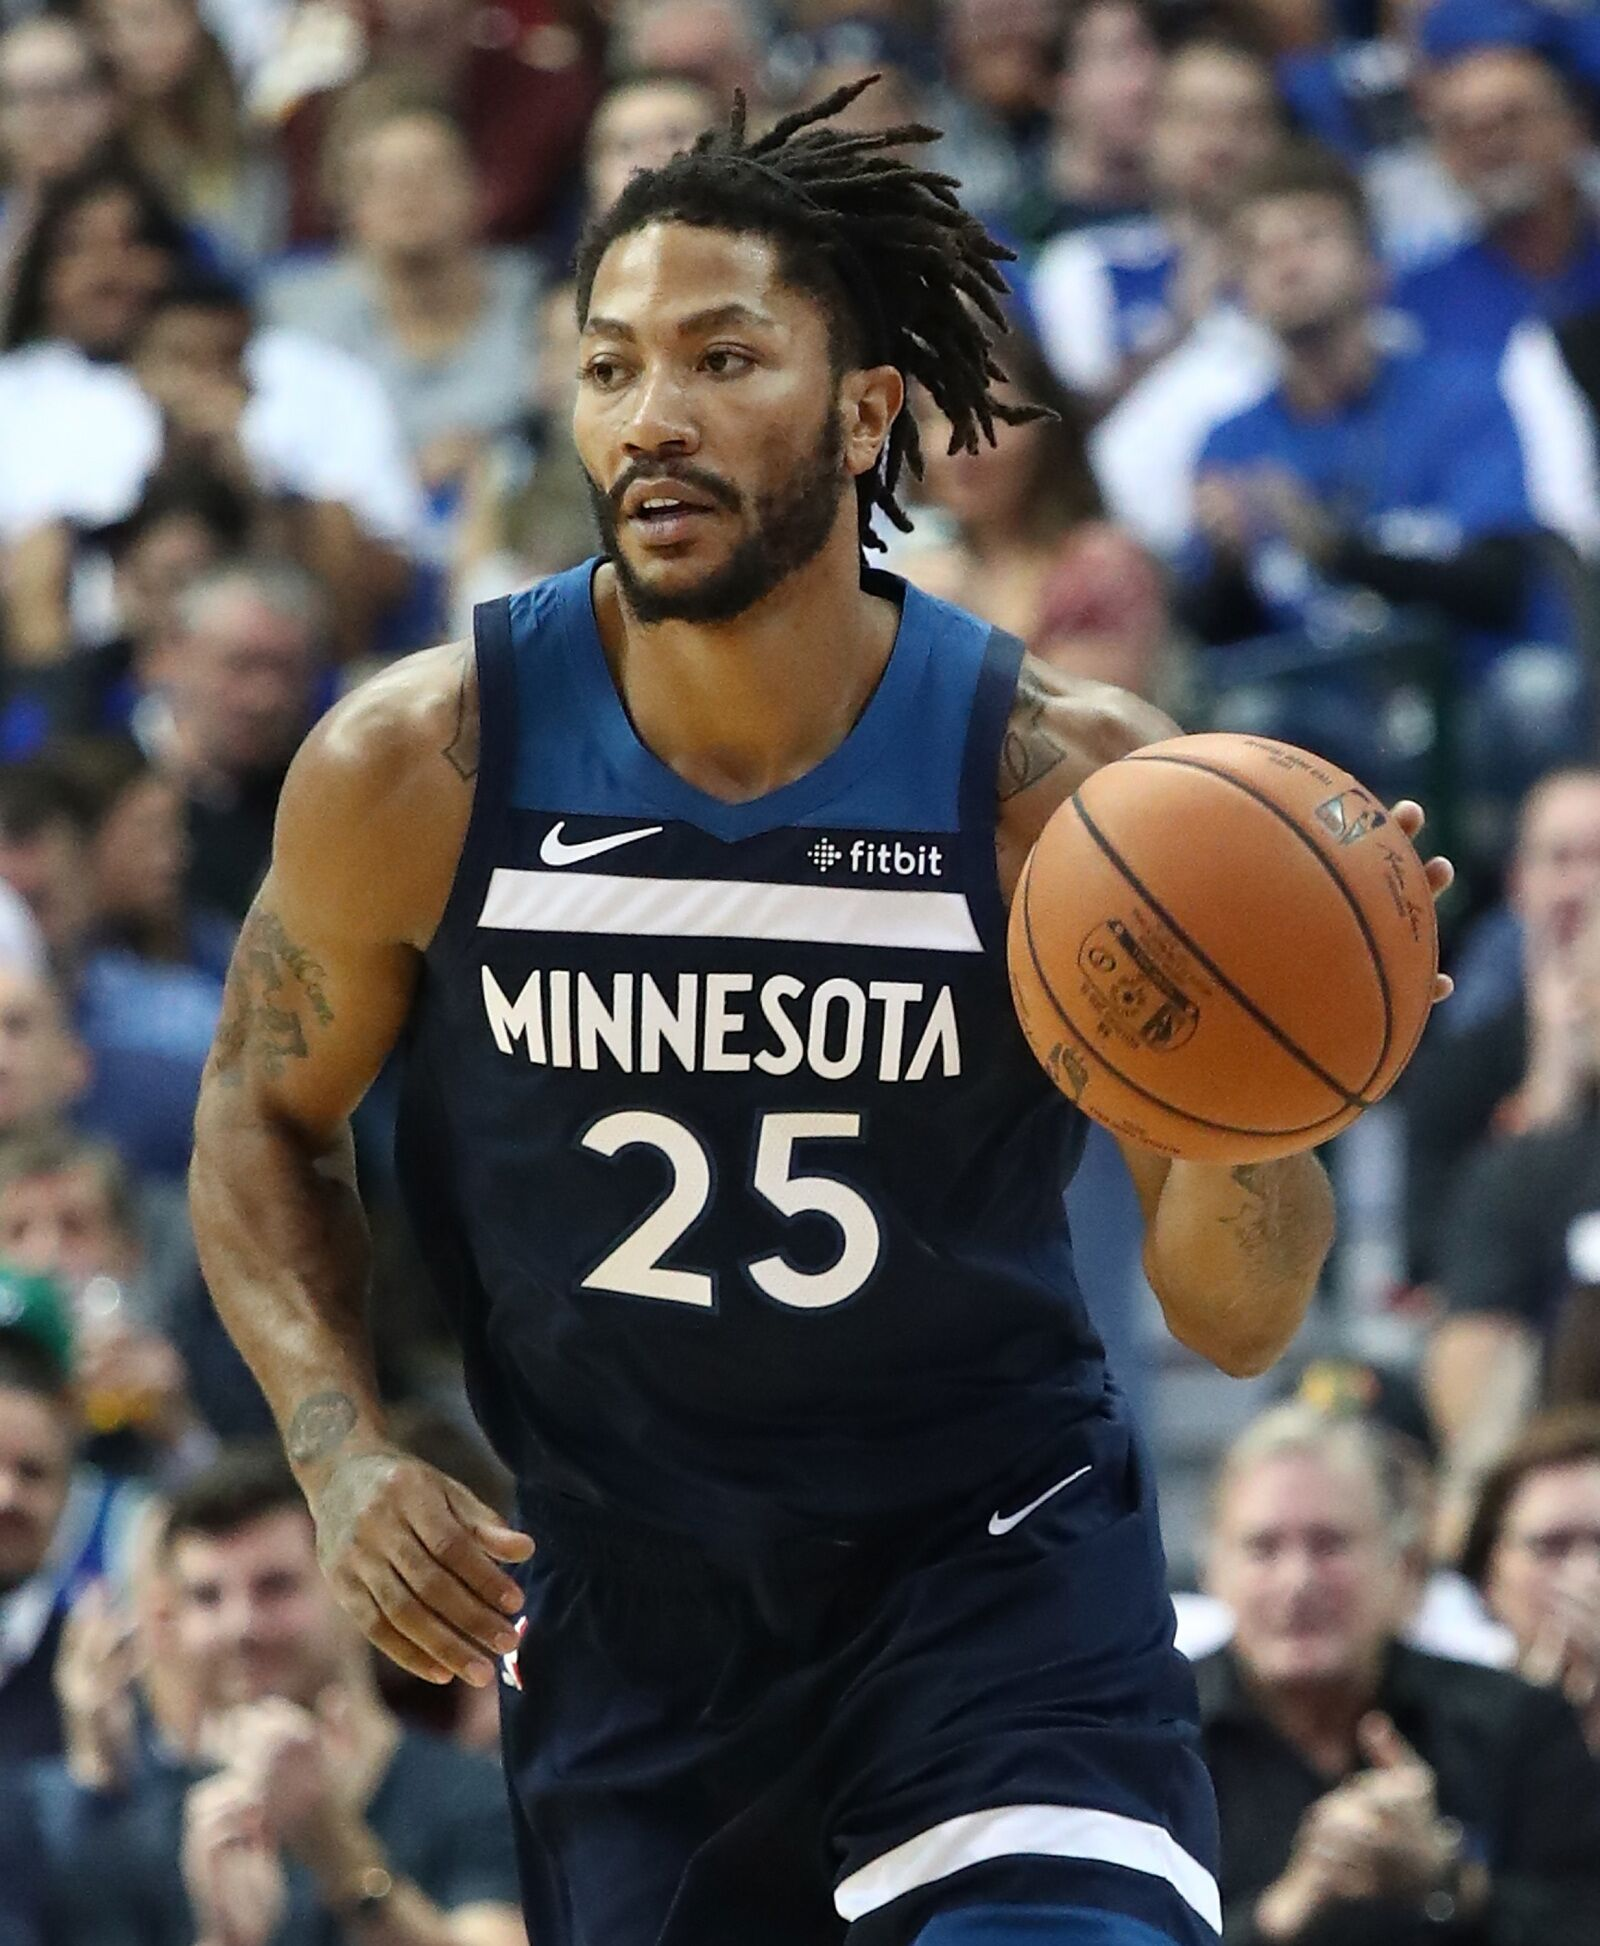 efbda9d7543a Derrick Rose is enjoying a career year with the Wolves at the age of 30